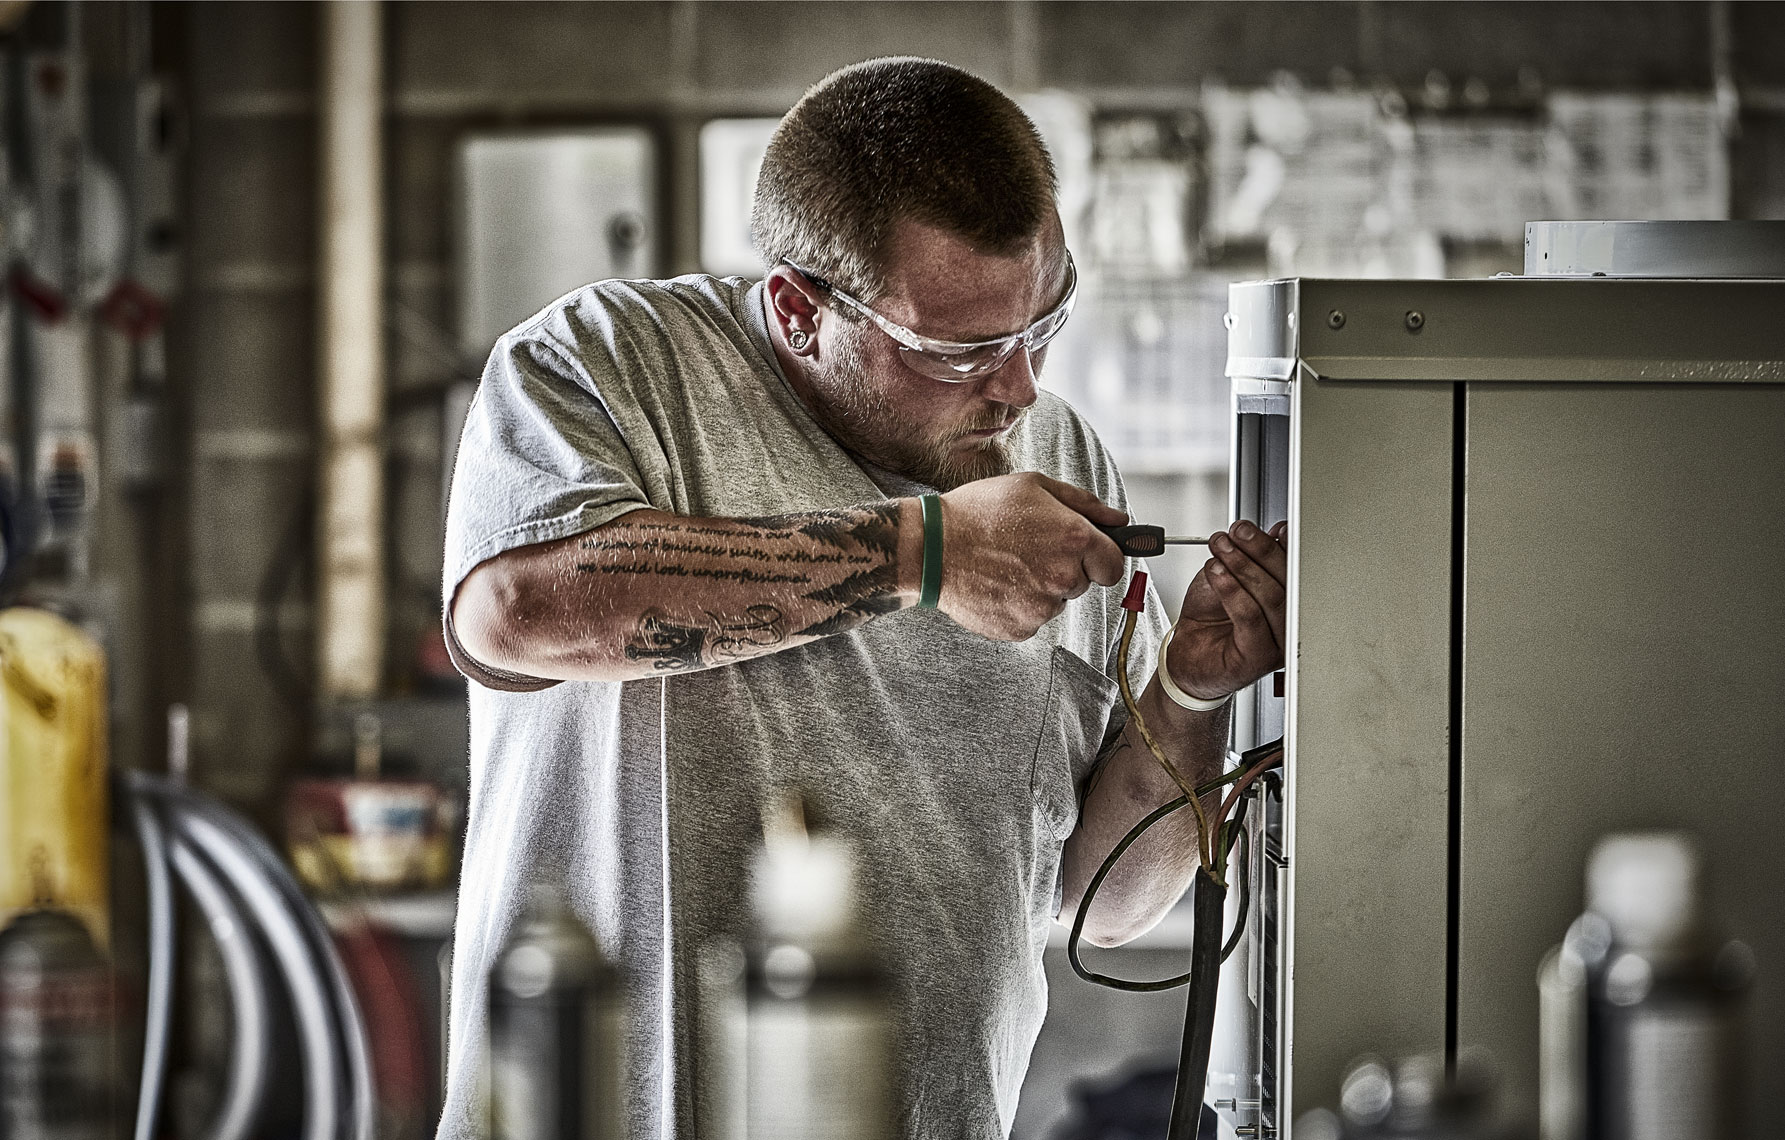 Tempair/worker/tool/manufacturing/lifestyle photo/InsideOut Studios